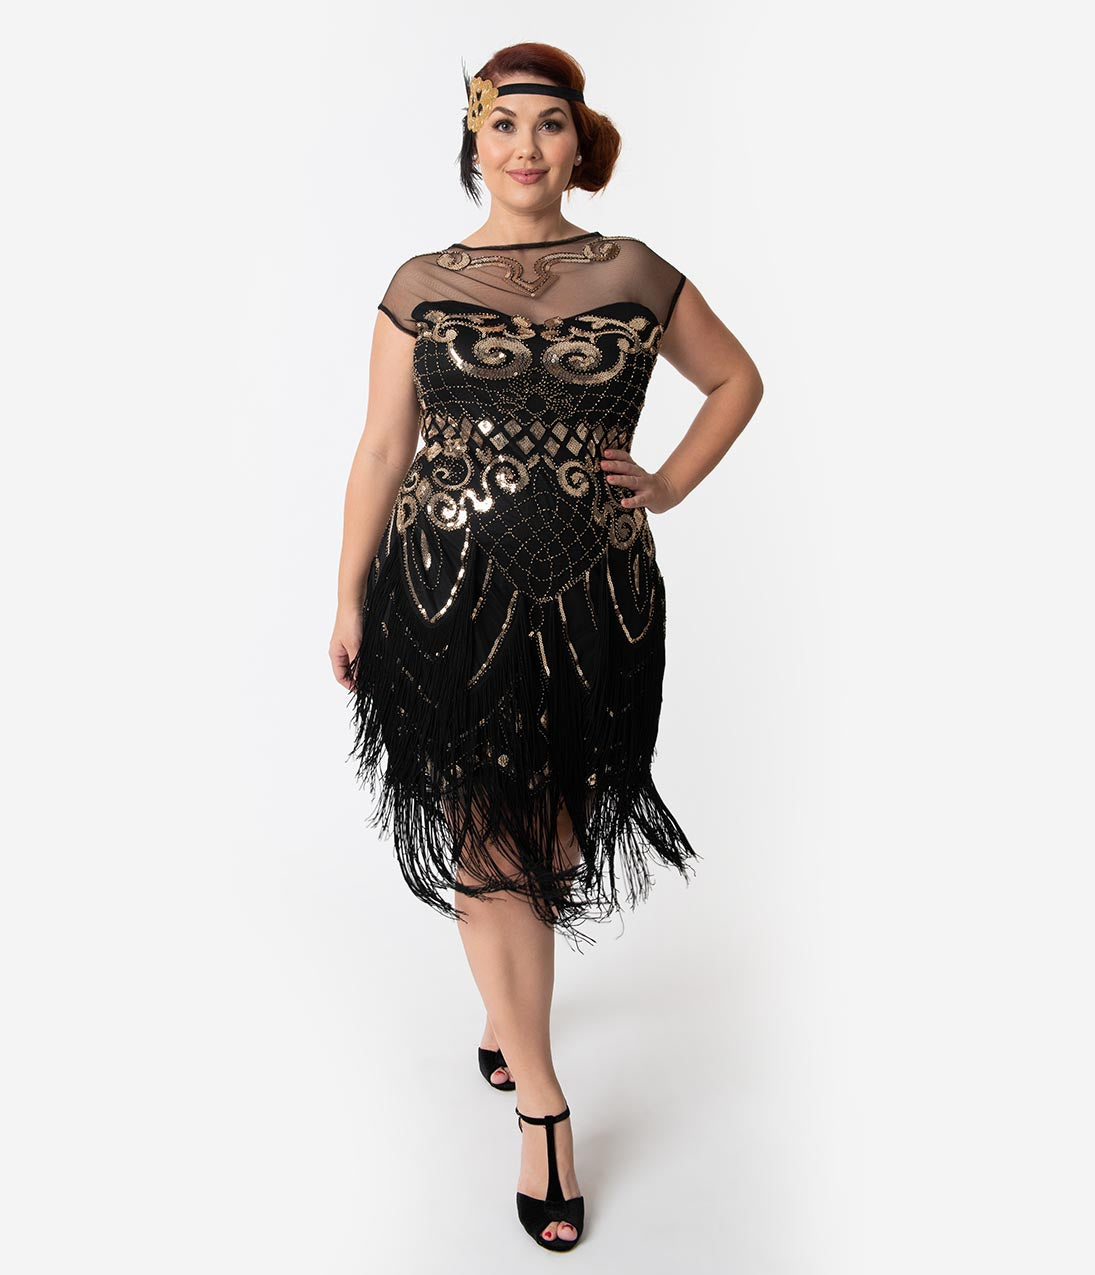 1920s Evening Dresses & Formal Gowns Unique Vintage Plus Size 1920S Black  Gold Sequin Fringe Zulla Flapper Dress $58.00 AT vintagedancer.com